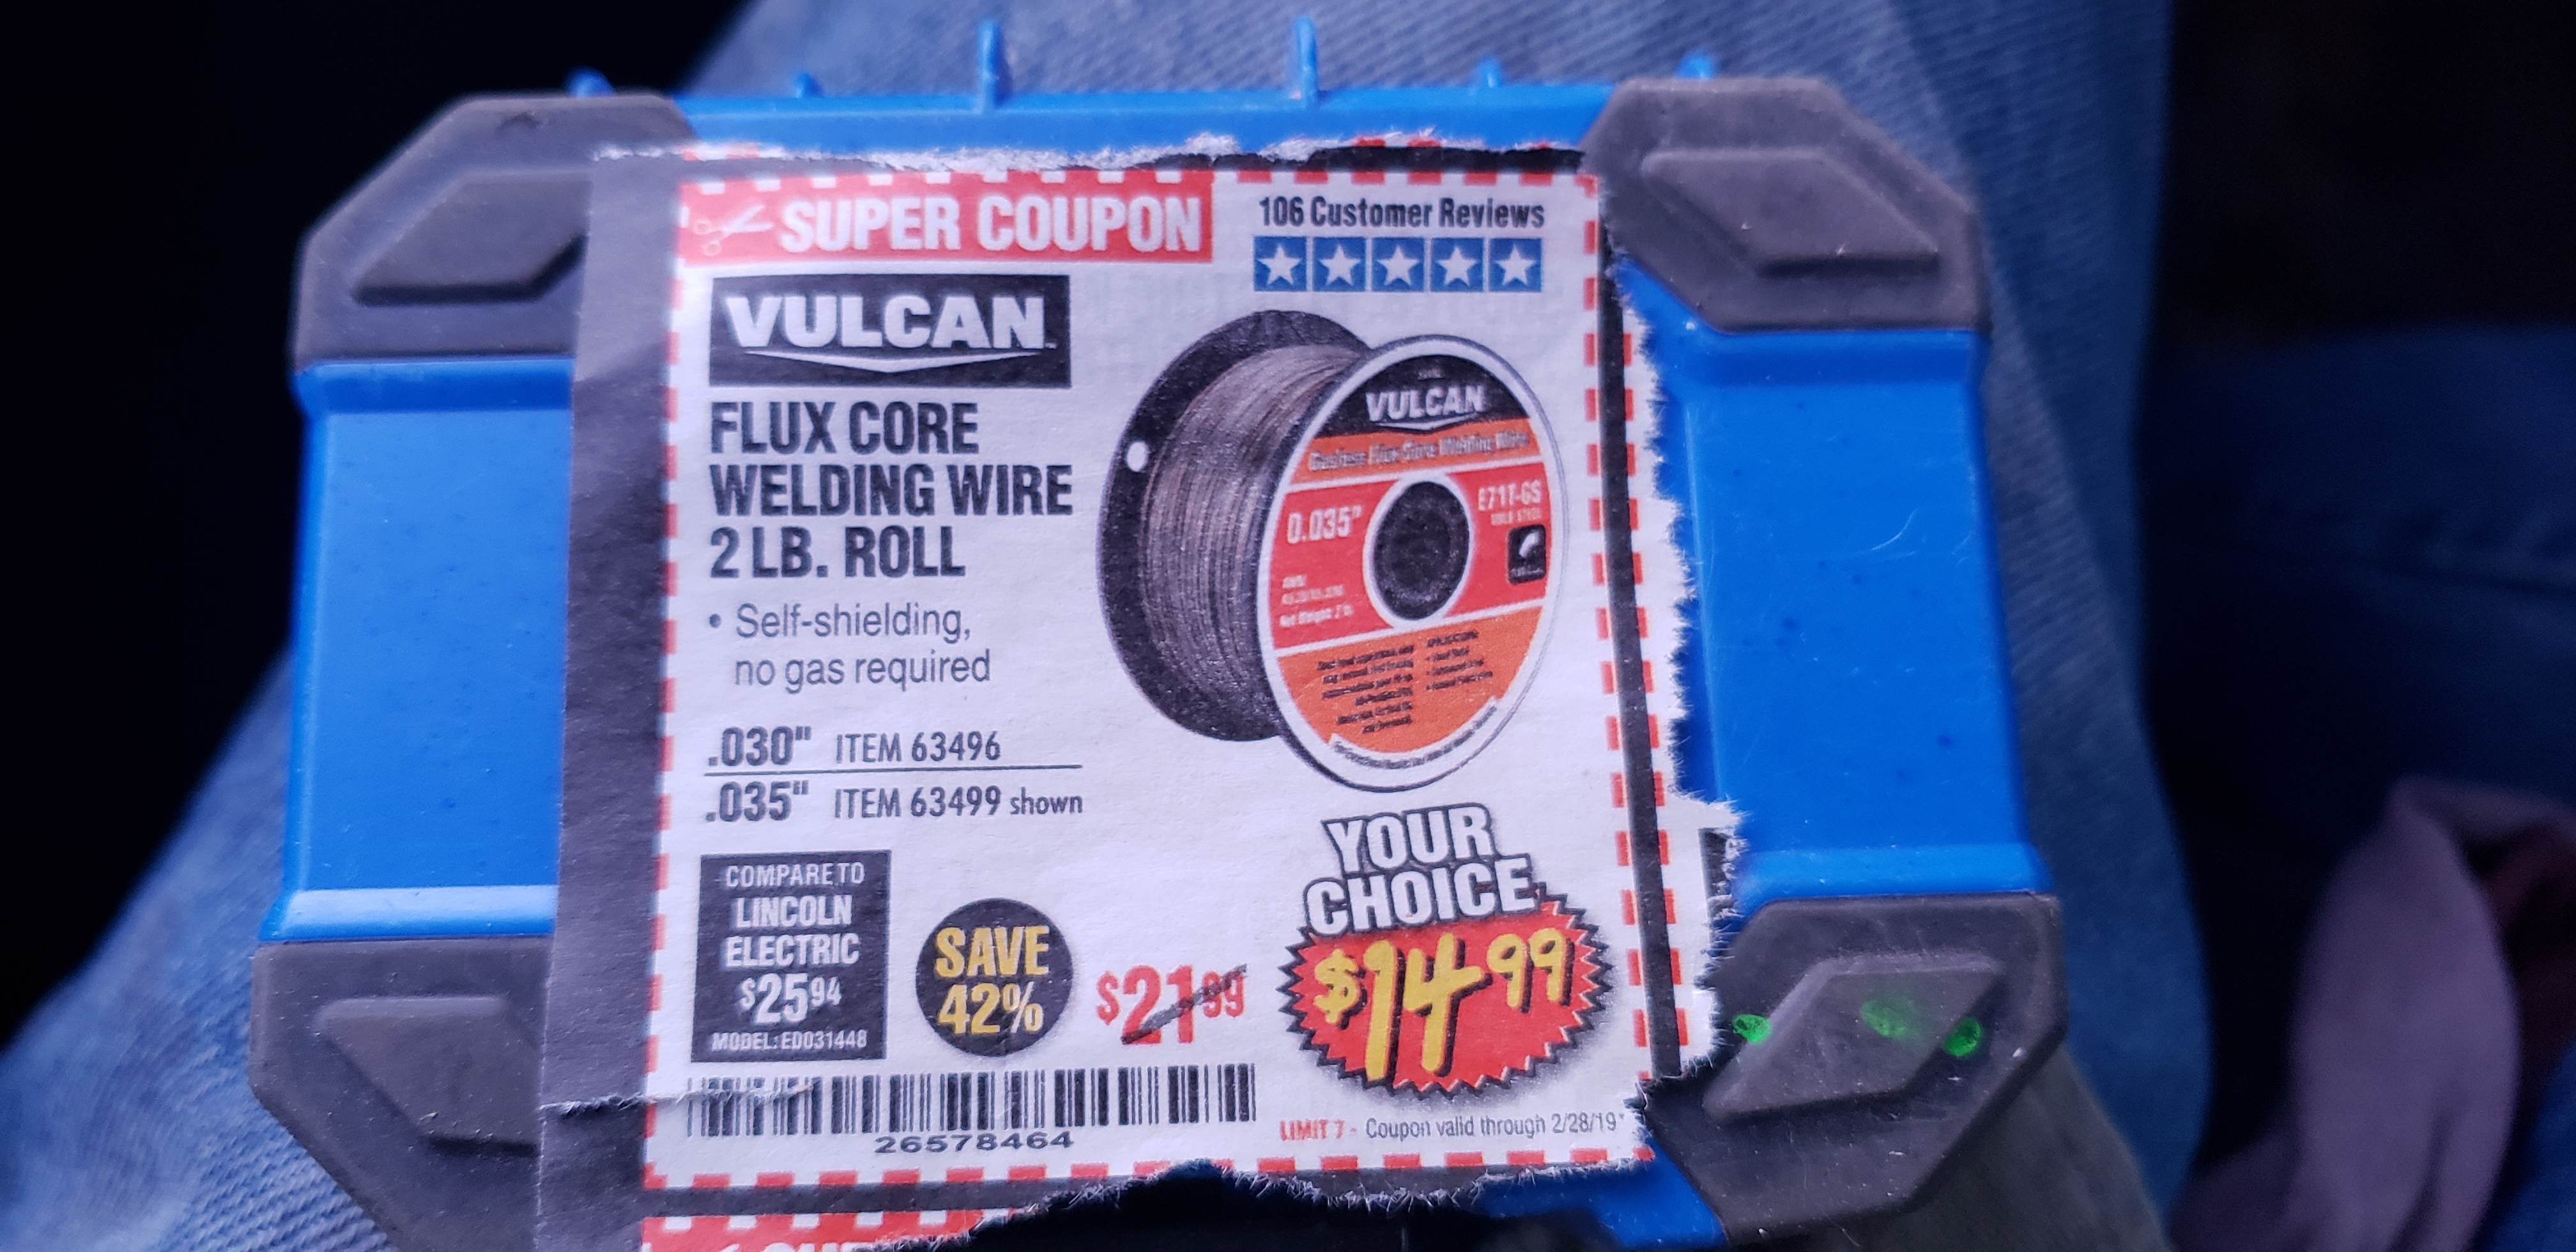 www.hfqpdb.com - FLUX CORE WELDING WIRE Lot No. 63496/63499